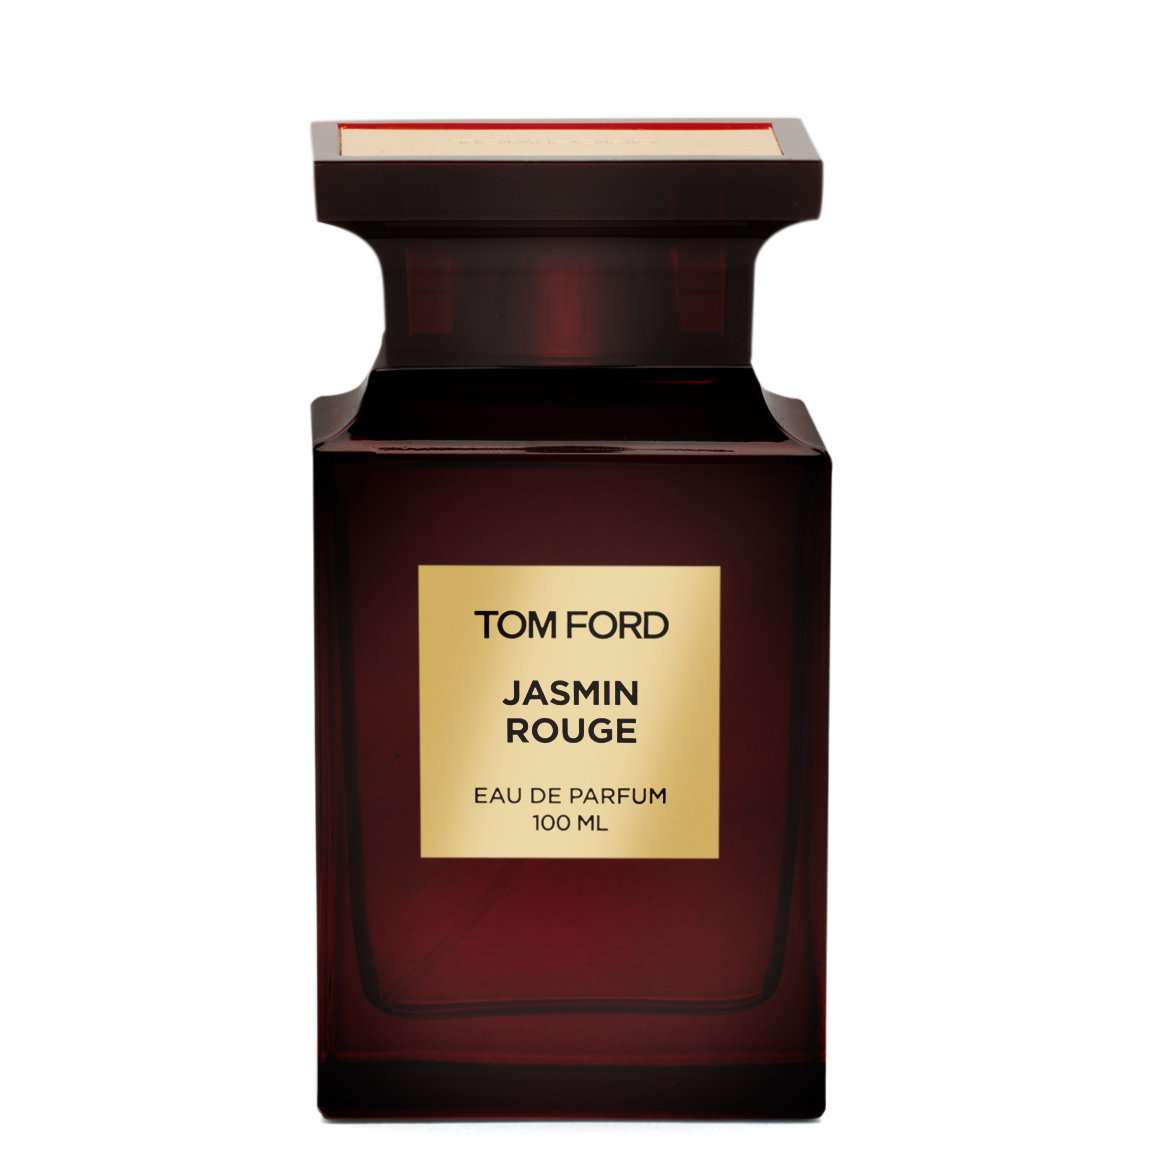 TOM FORD Jasmin Rouge 100 ml product smear.